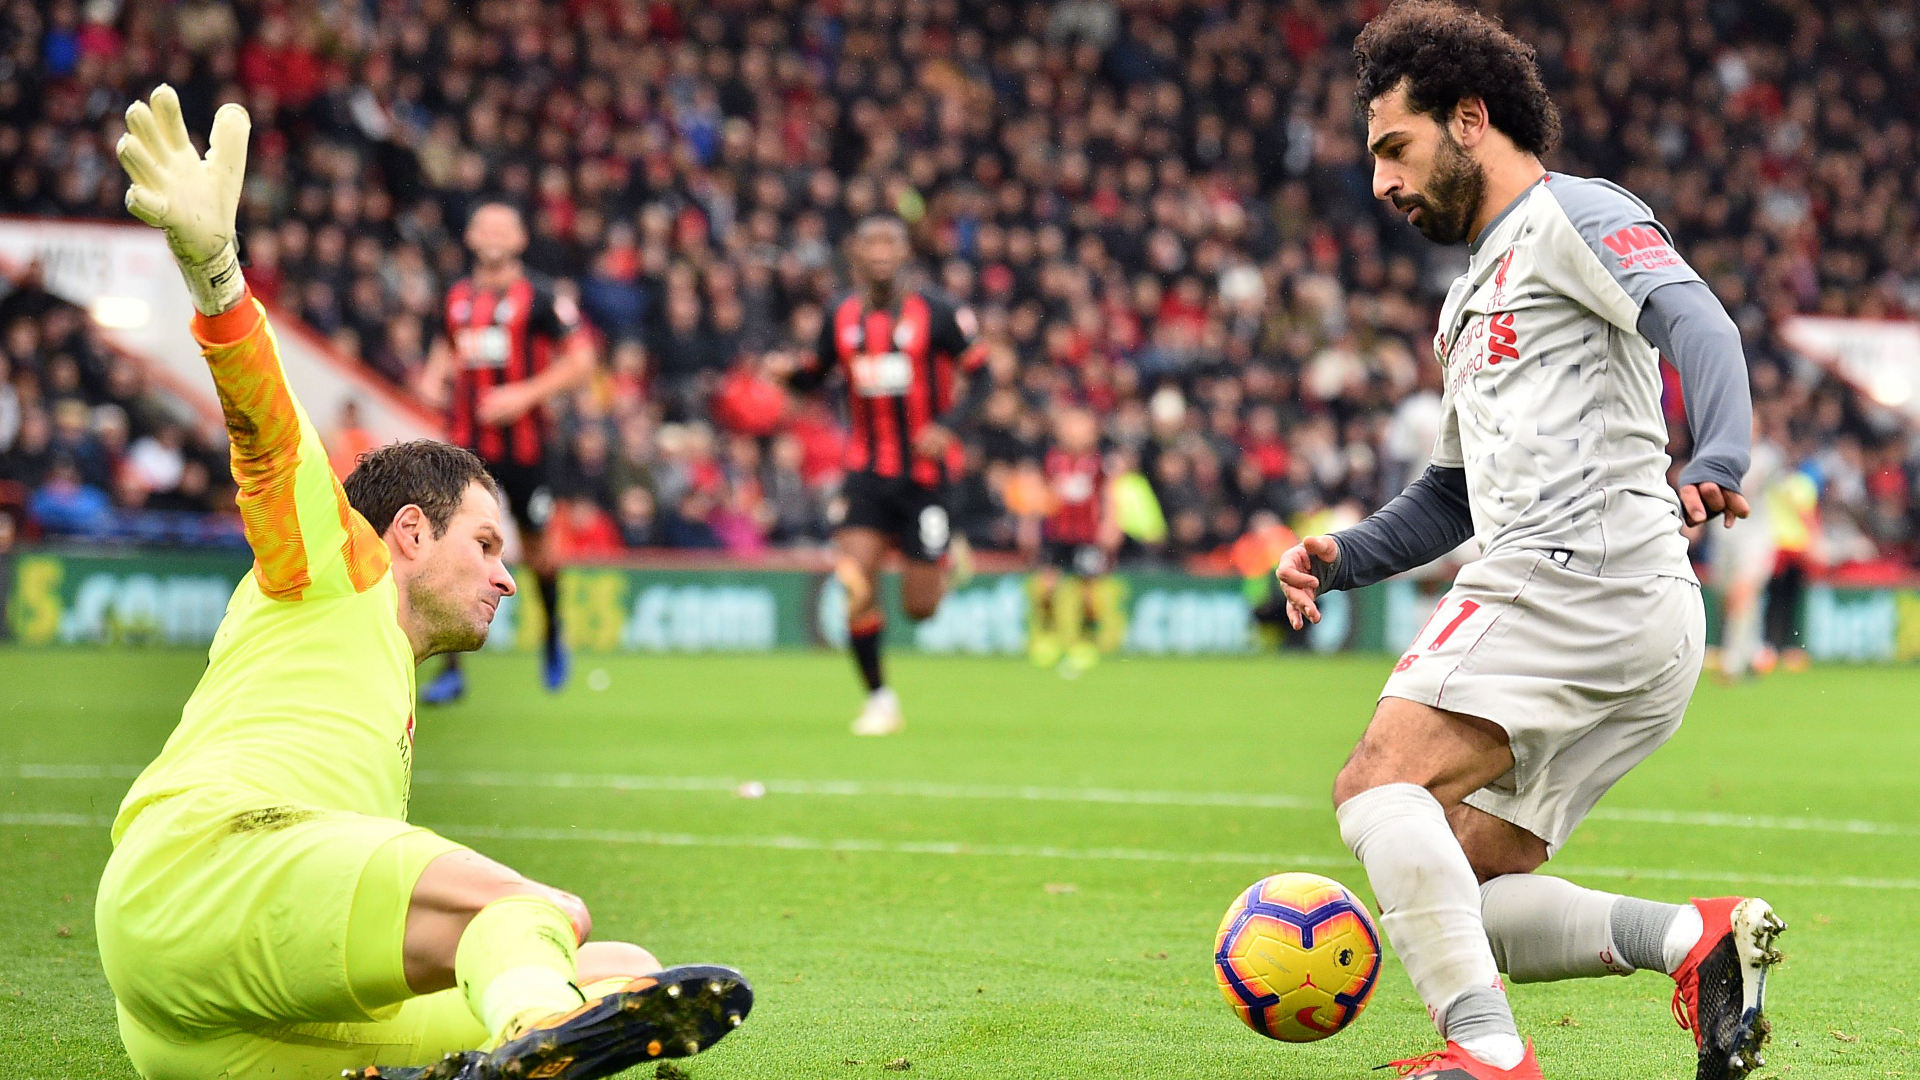 Klopp and Howe united in appreciation for Salah